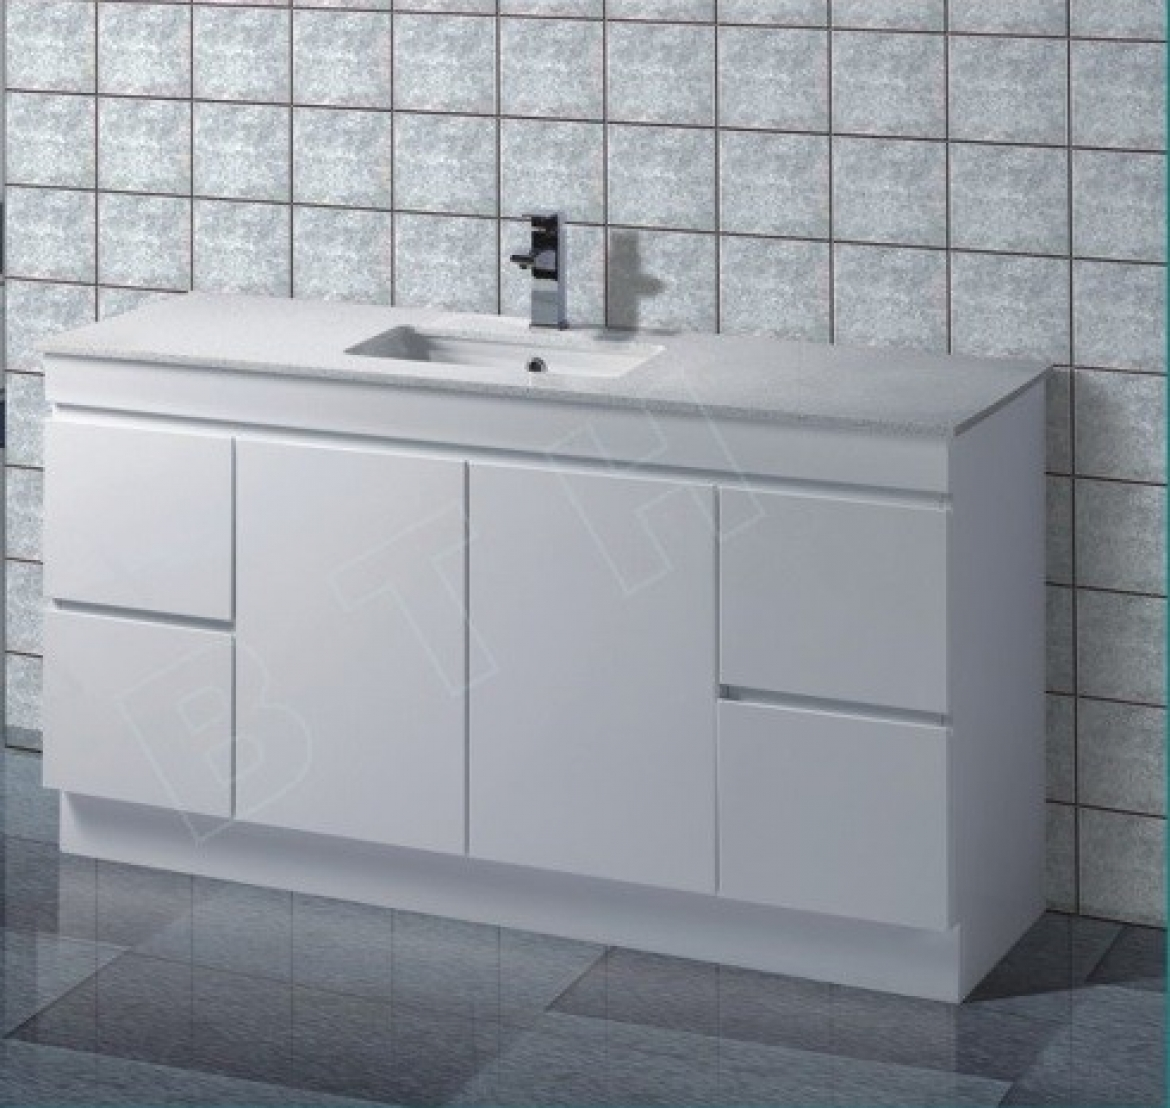 Bathroom stone top vanity [Single Basin-1700 mm]